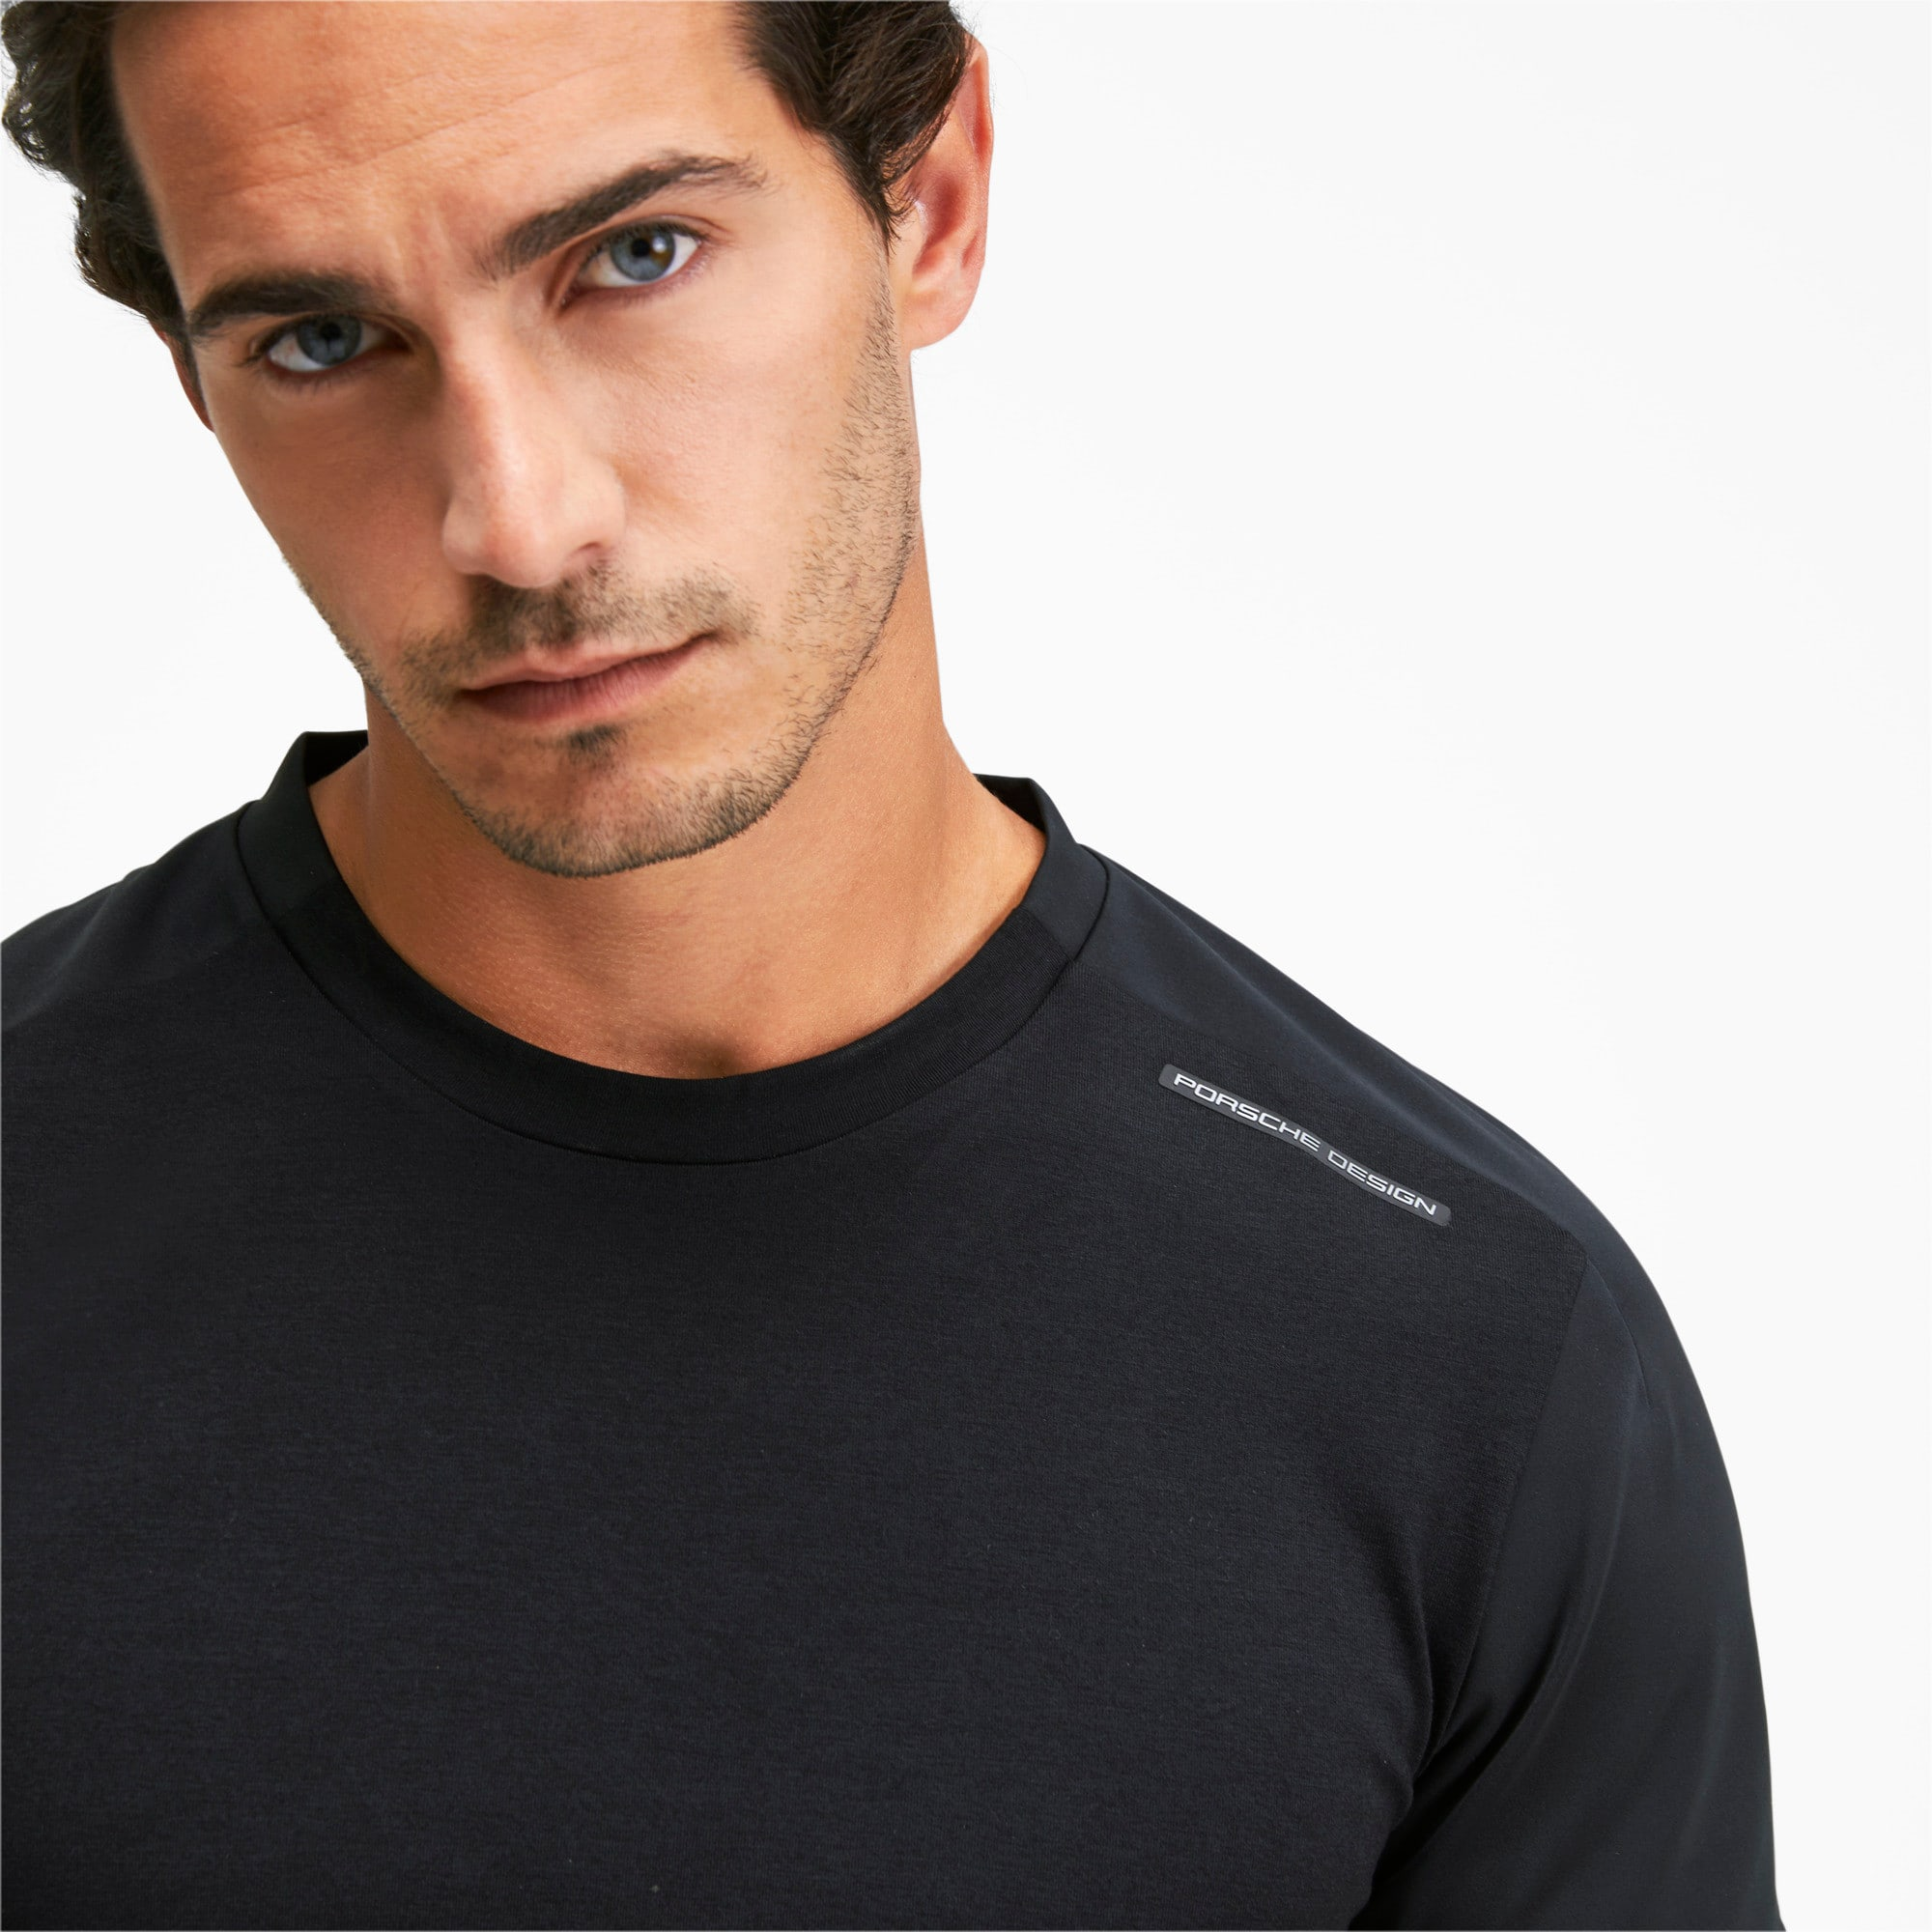 Thumbnail 6 of Porsche Design RCT Men's Tee, Jet Black, medium